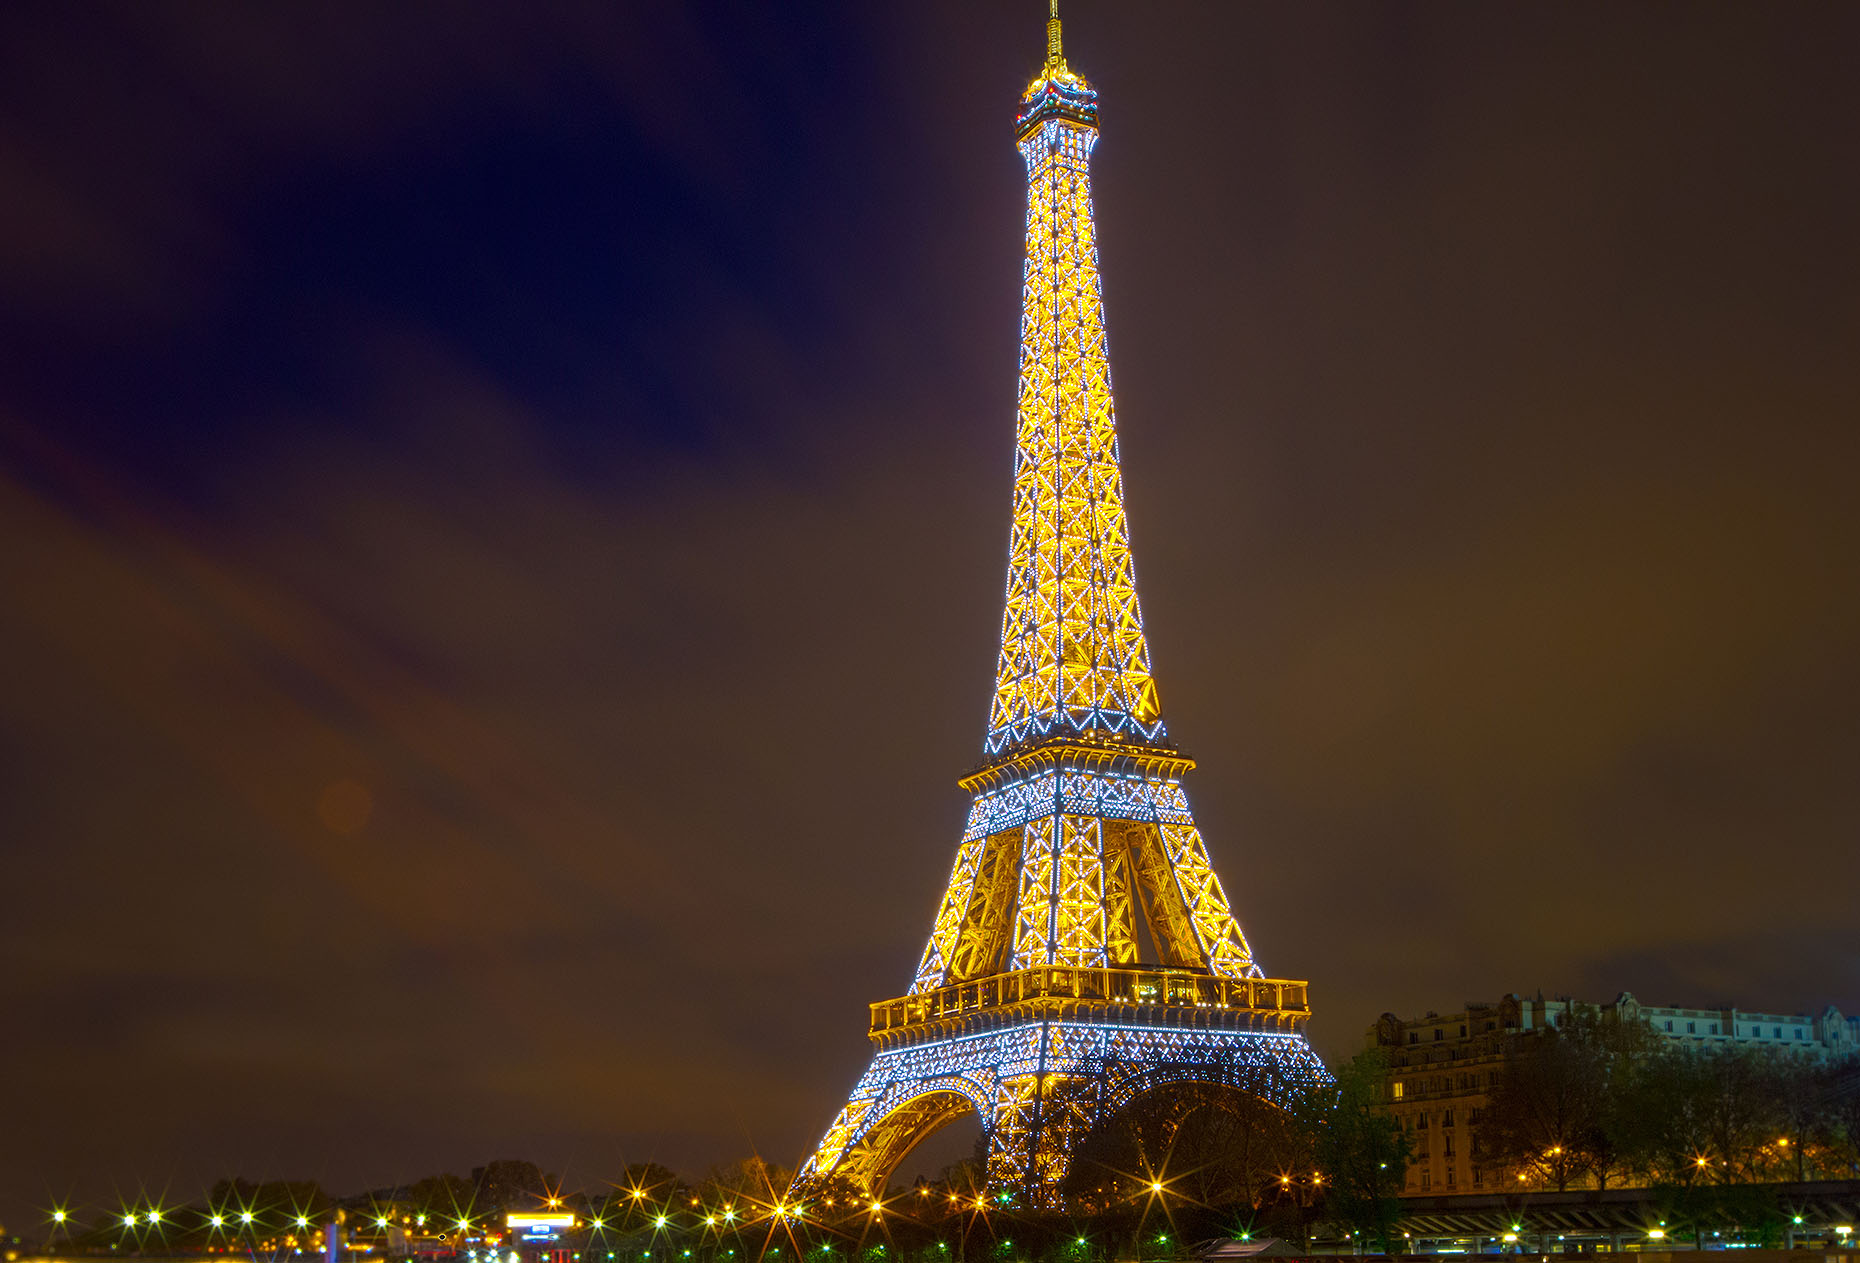 France_Paris_EiffelTowerTwilight_01_webuse.jpg